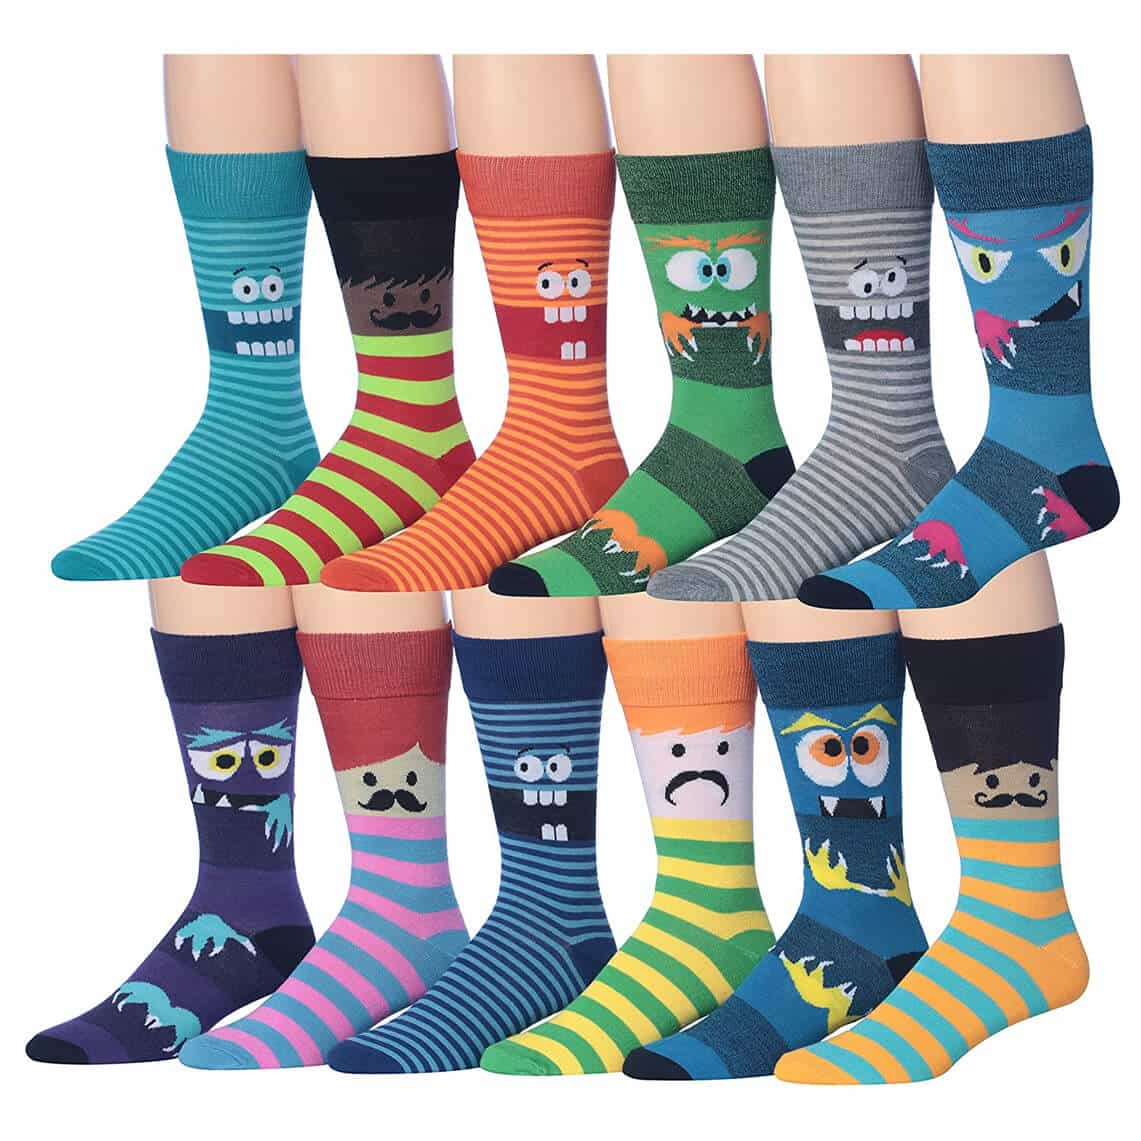 James Fiallo Men's 12-Pairs Funny Funky Crazy Novelty Colorful Patterned Dress Socks